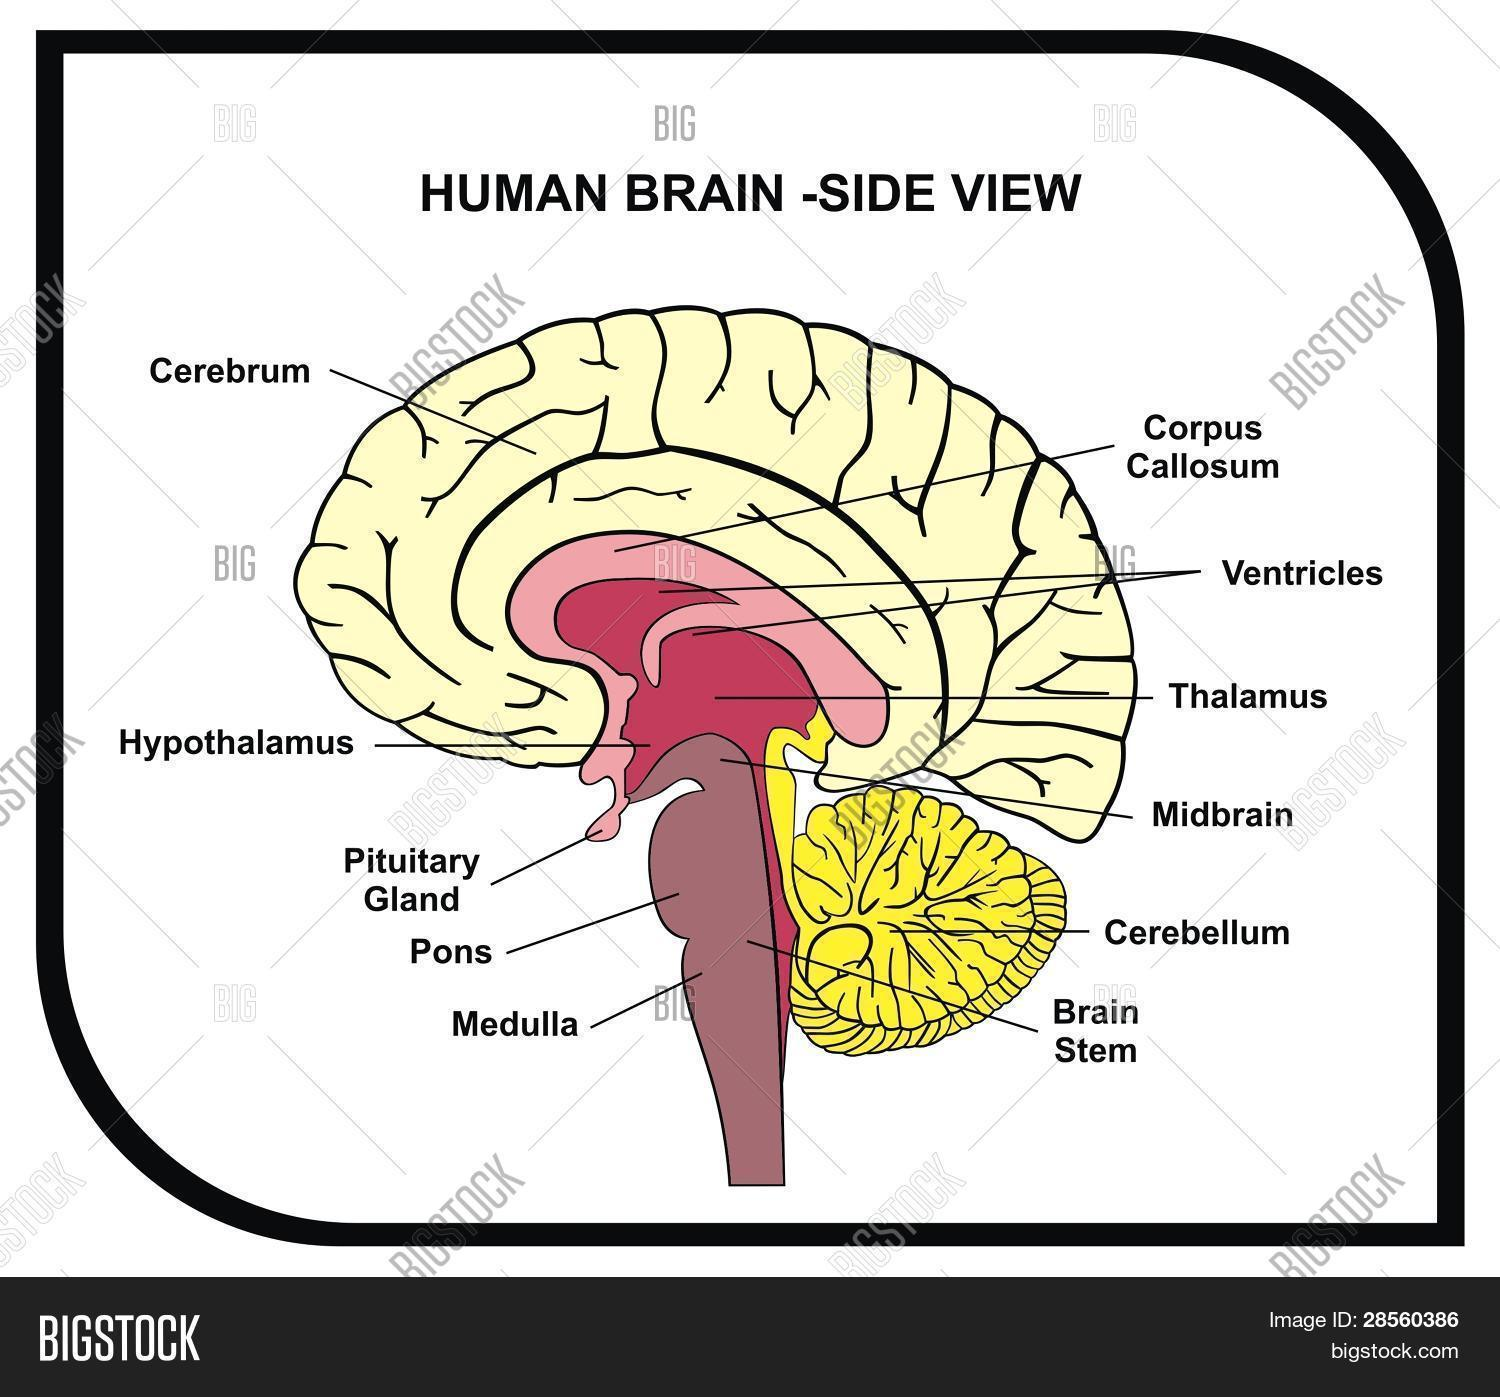 hight resolution of human brain diagram side view with parts cerebrum hypothalamus thalamus pituitary